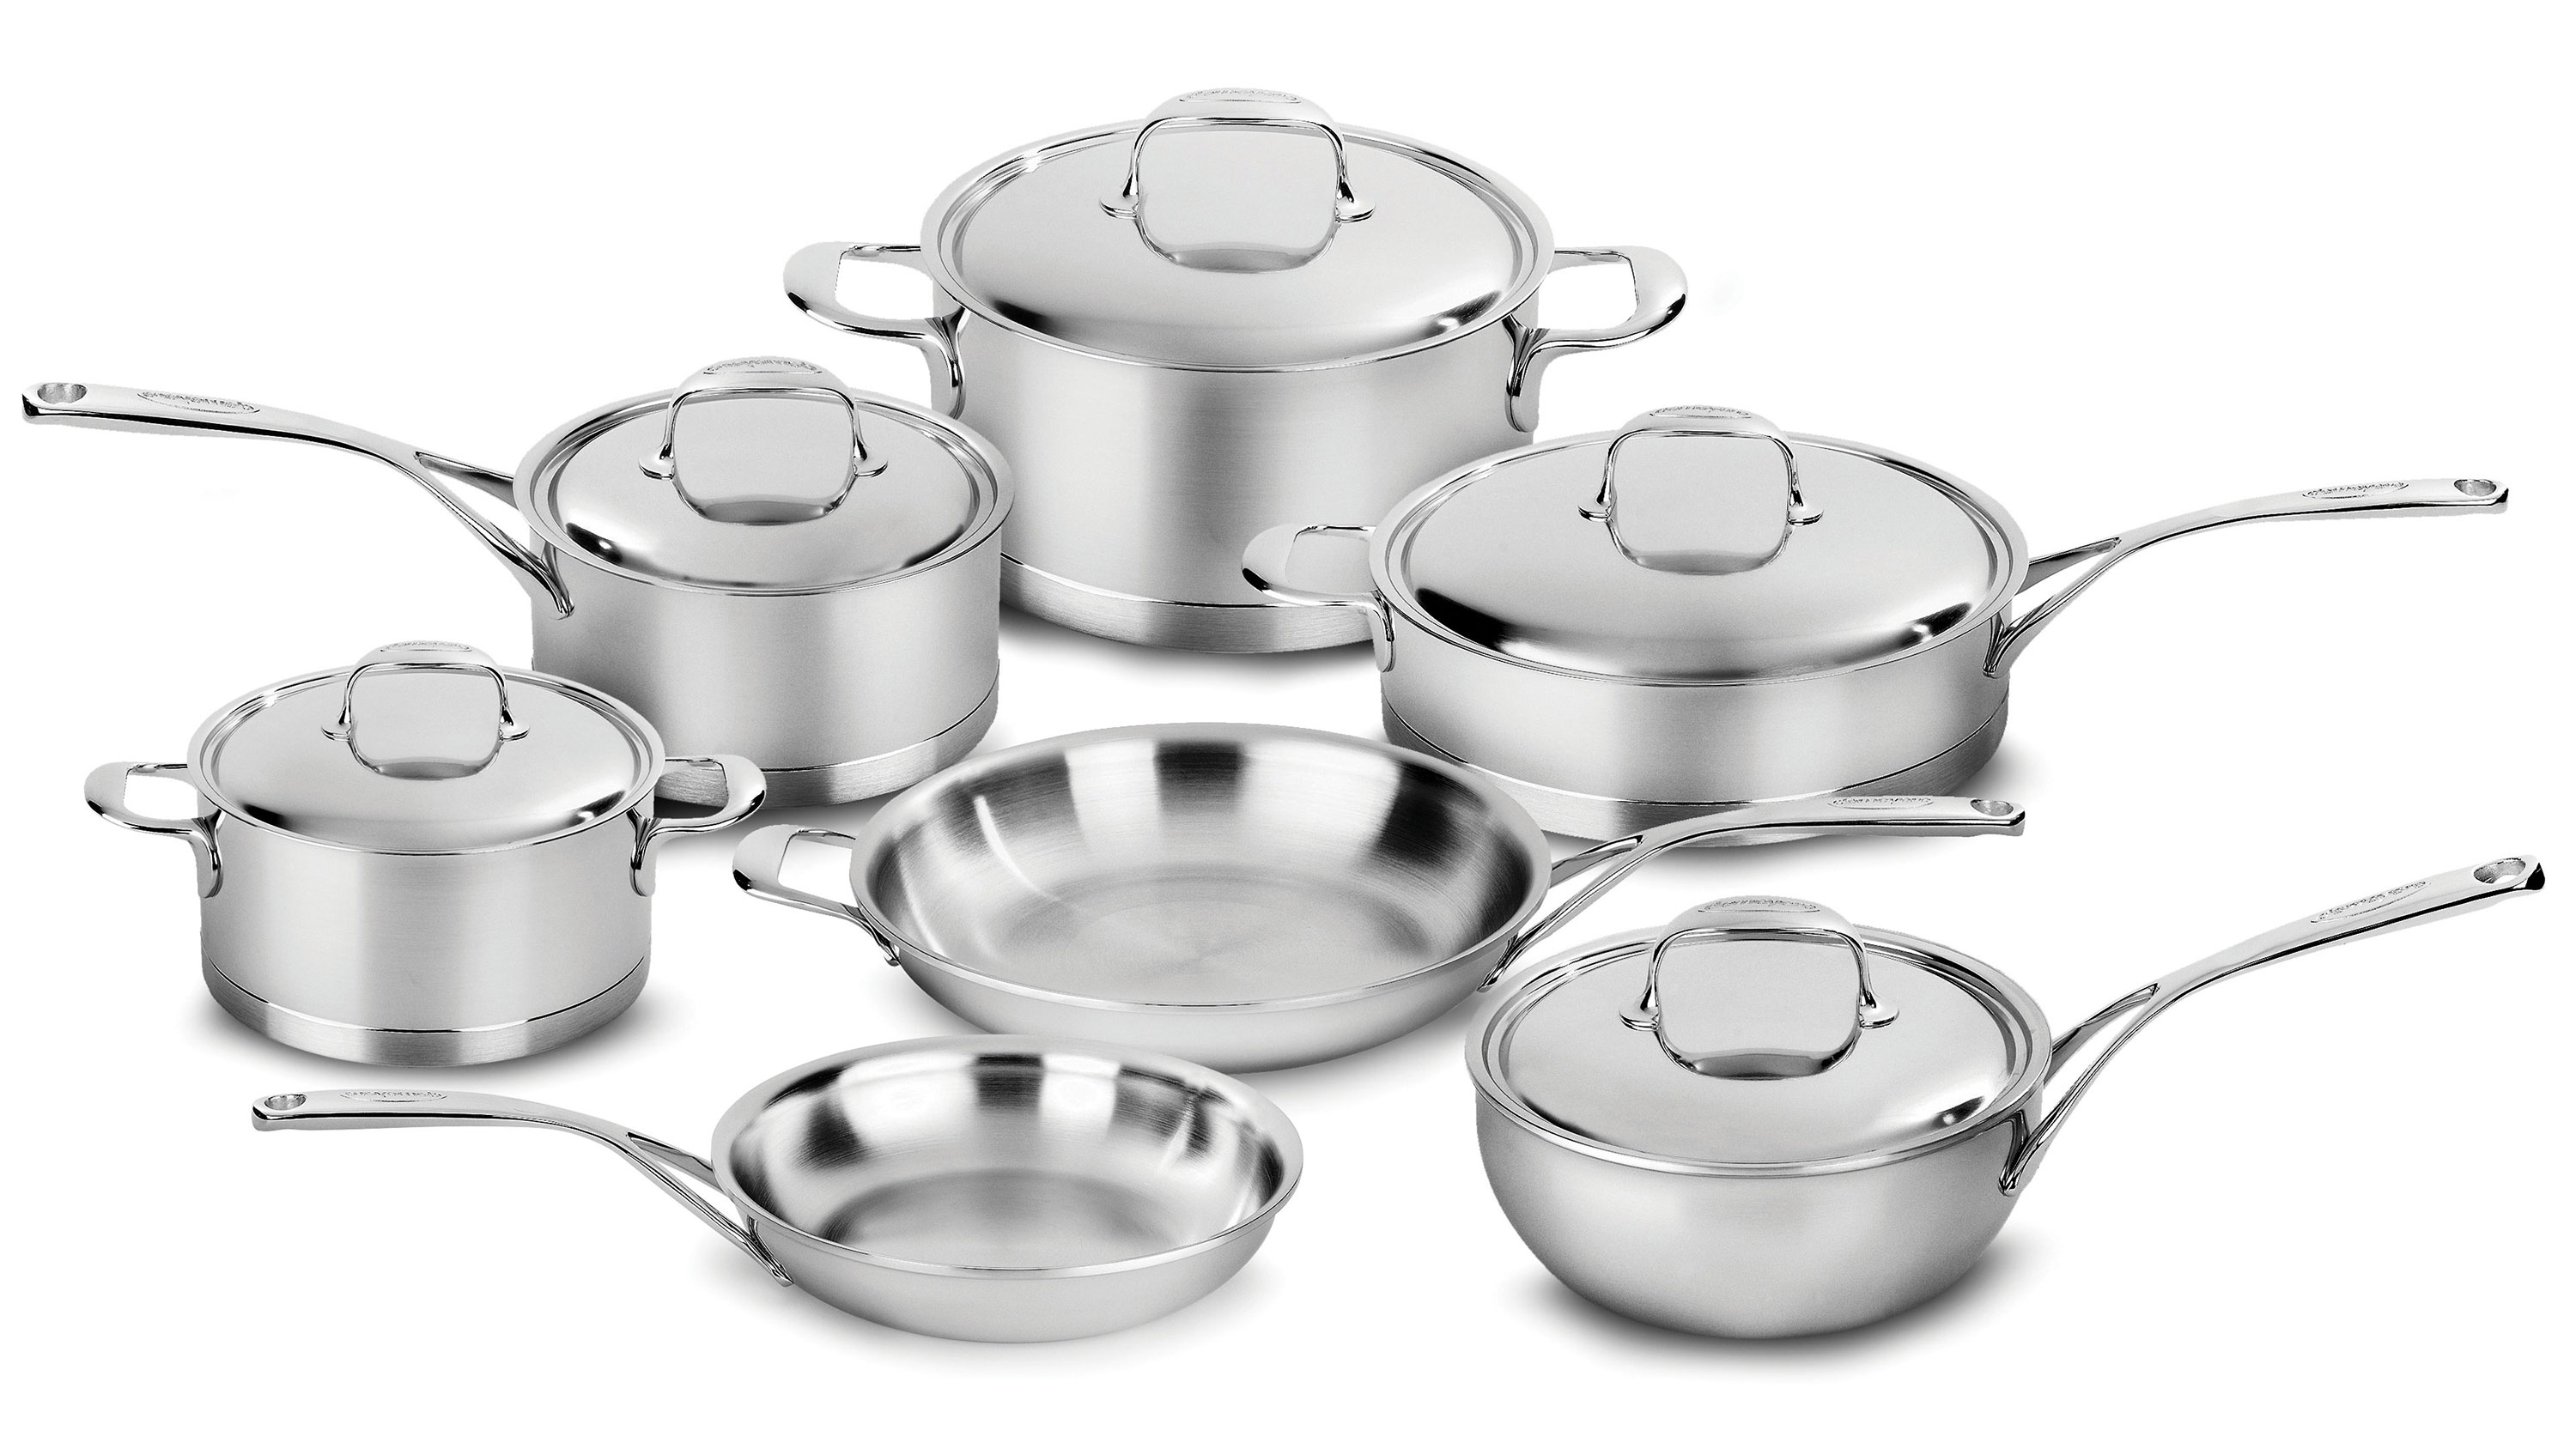 Demeyere Atlantis Cookware Set 12 Piece Stainless Steel